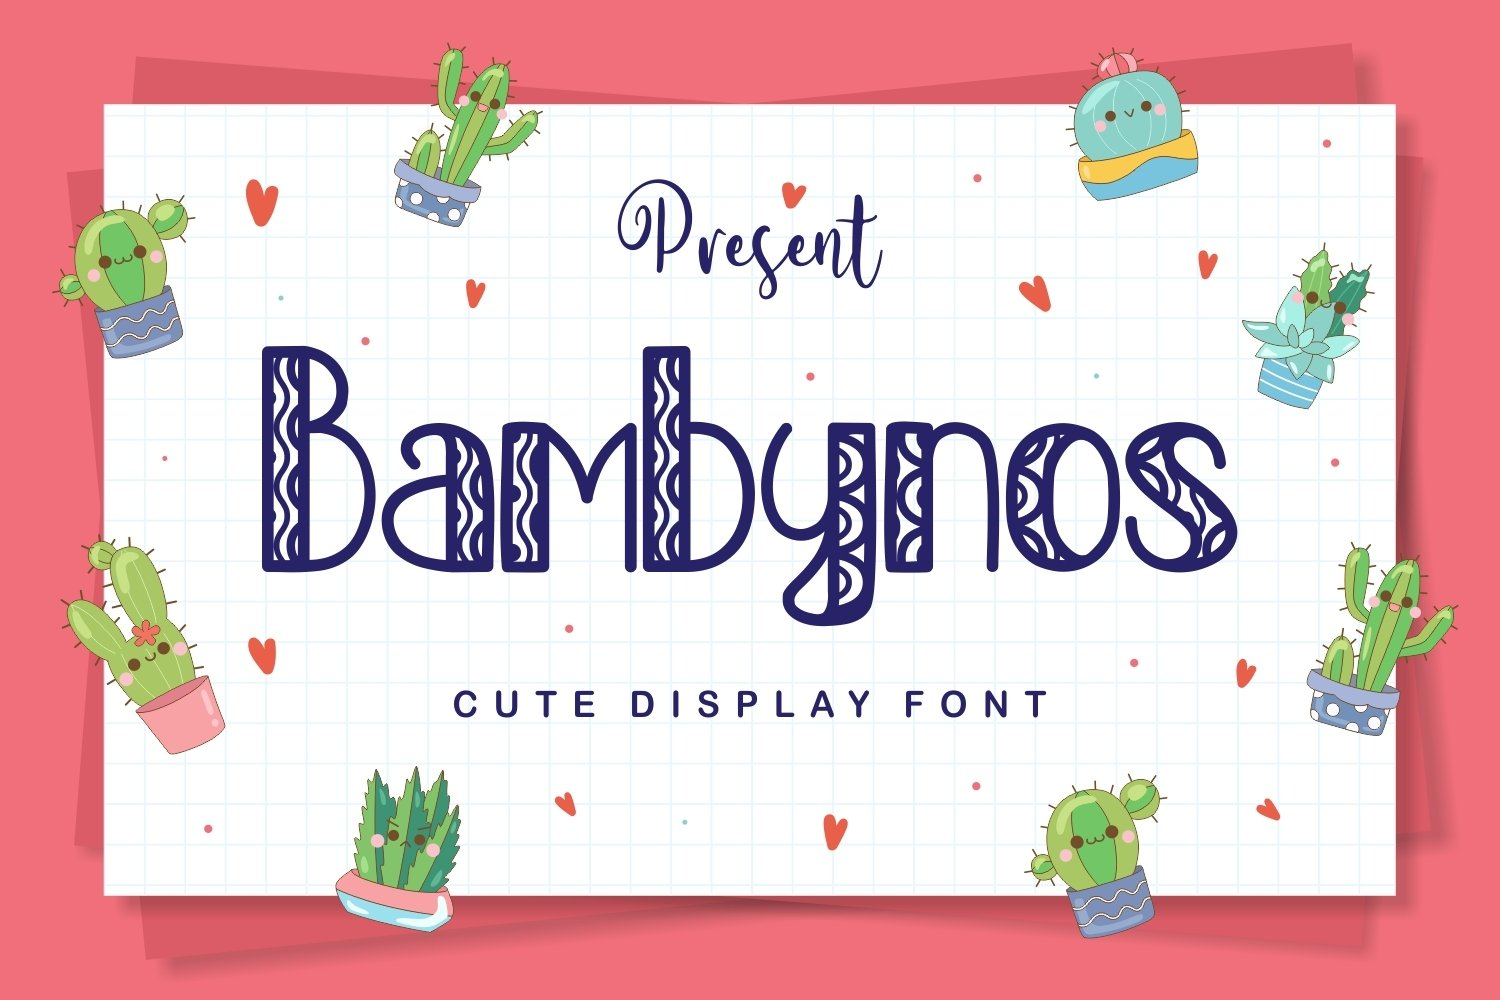 Bambynos - Cute Display Font example image 1